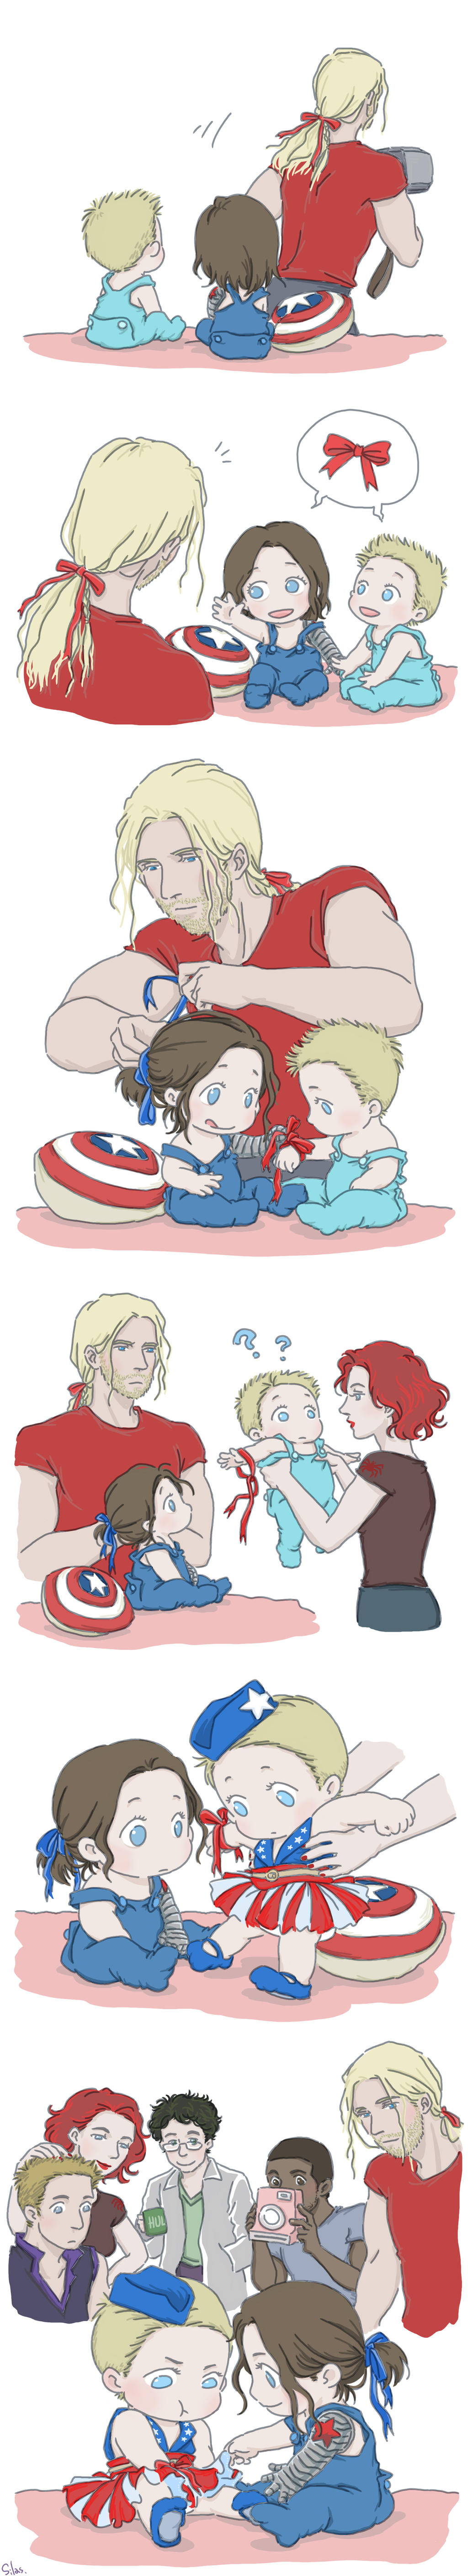 Avengers Imagines - Steve and Bucky|Babies - Wattpad